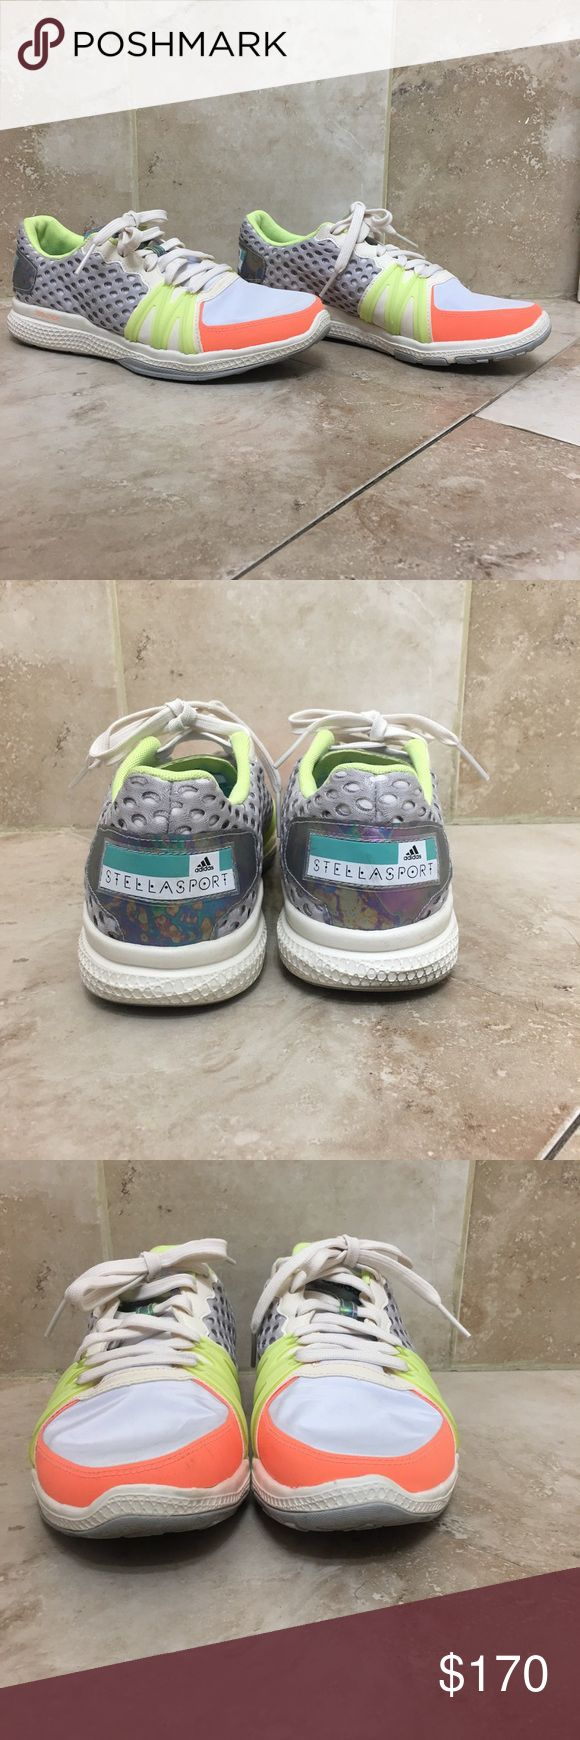 *RARE* Stella McCartney for Adidas Bounce Sneakers VERY RARE. Sneaker collector's dream! Size 7.5 women's. Worn once, ZERO signs of wear only on the soles of these beauties. Adidas by Stella McCartney Shoes Sneakers